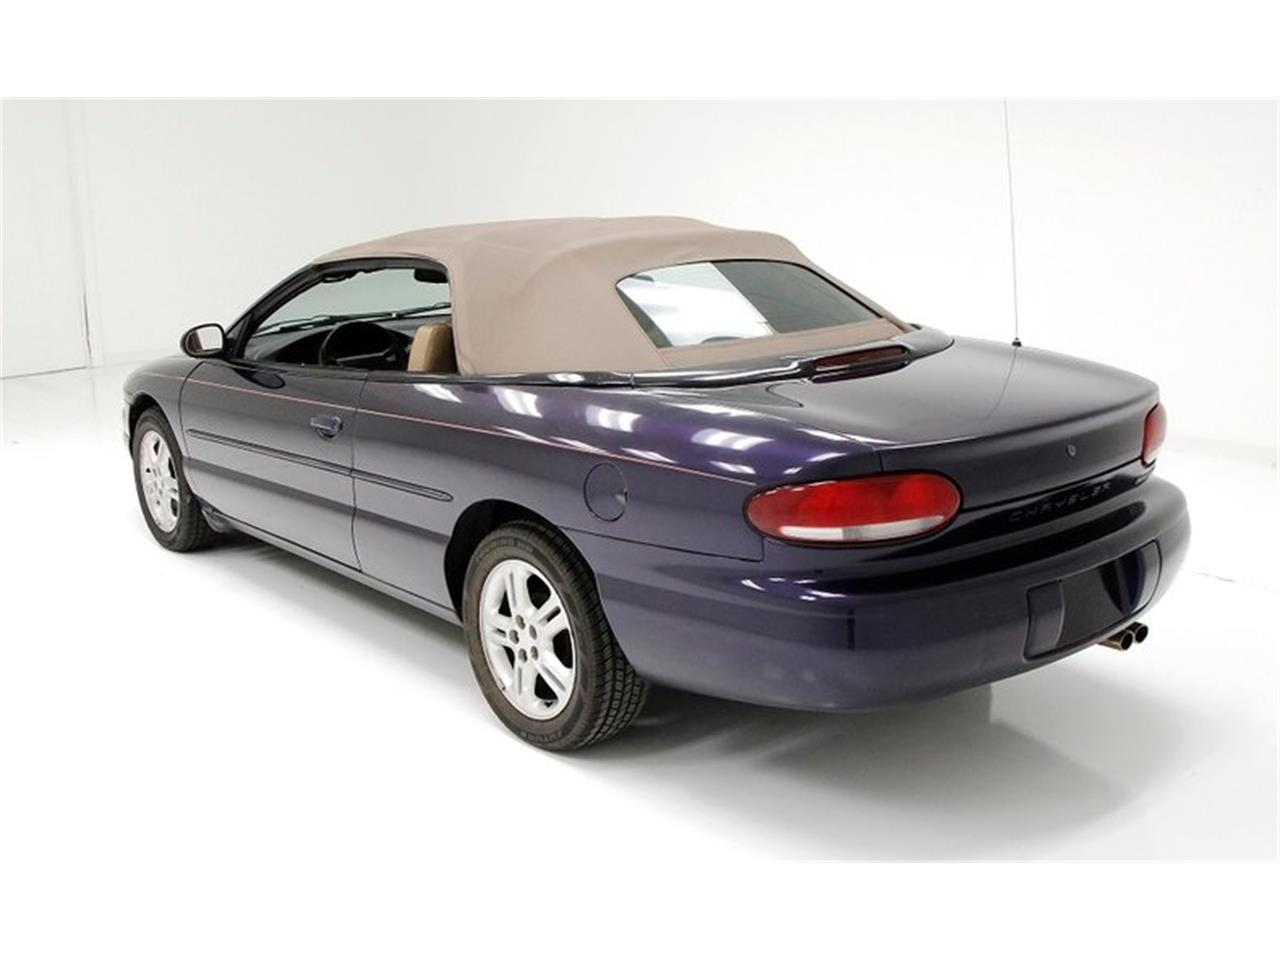 Large Picture of '97 Sebring located in Morgantown Pennsylvania - $7,995.00 - LVUB